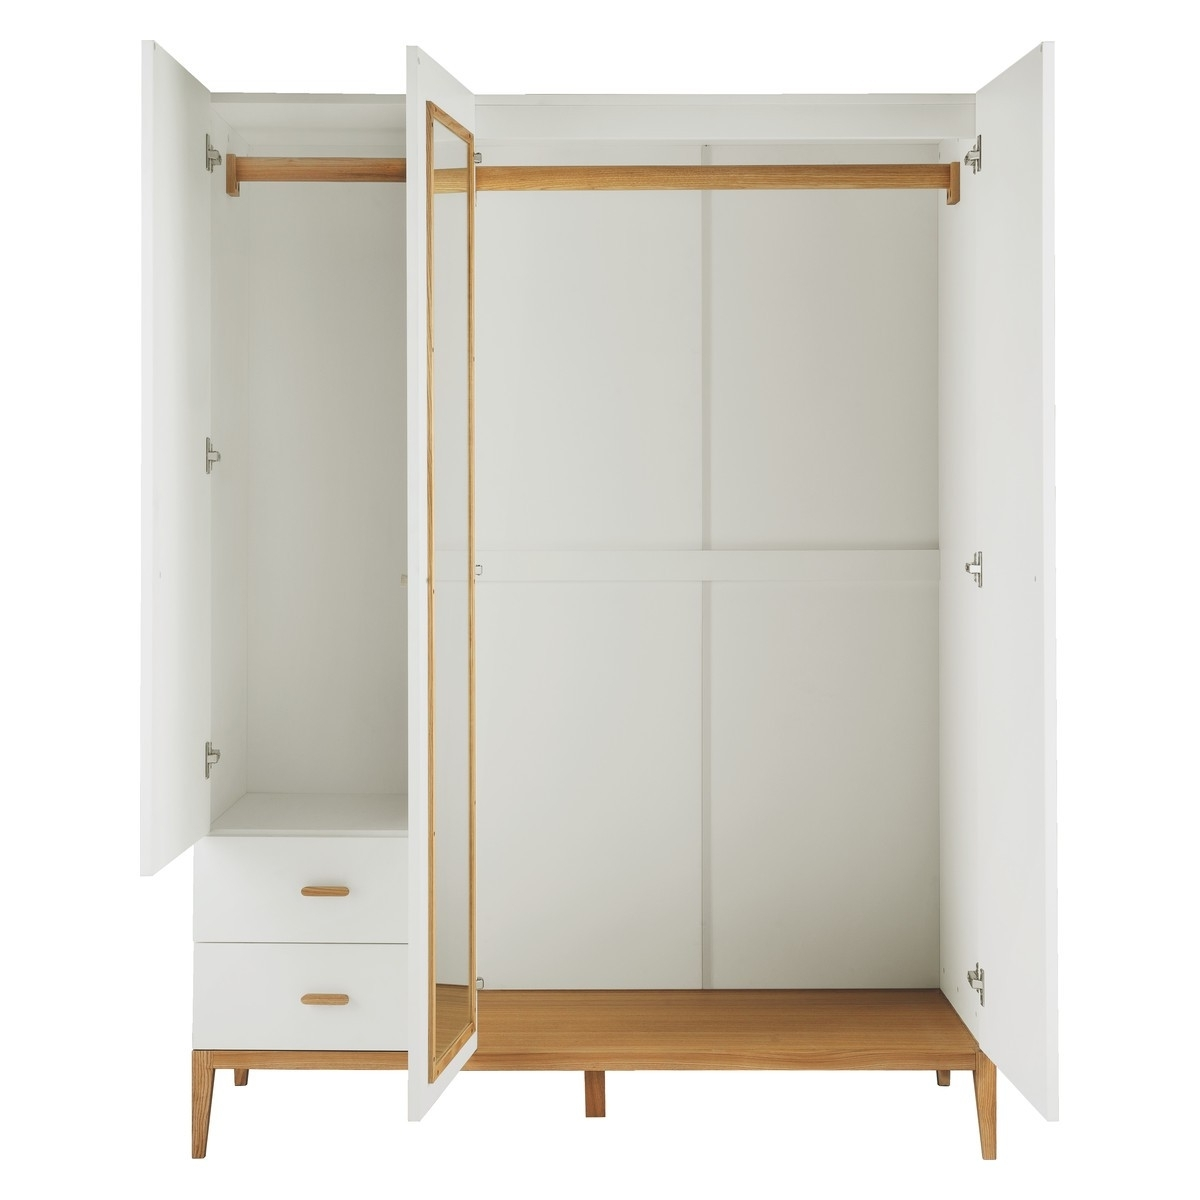 Tatsuma Ash White 3 Door Wardrobe (View 1 of 15)